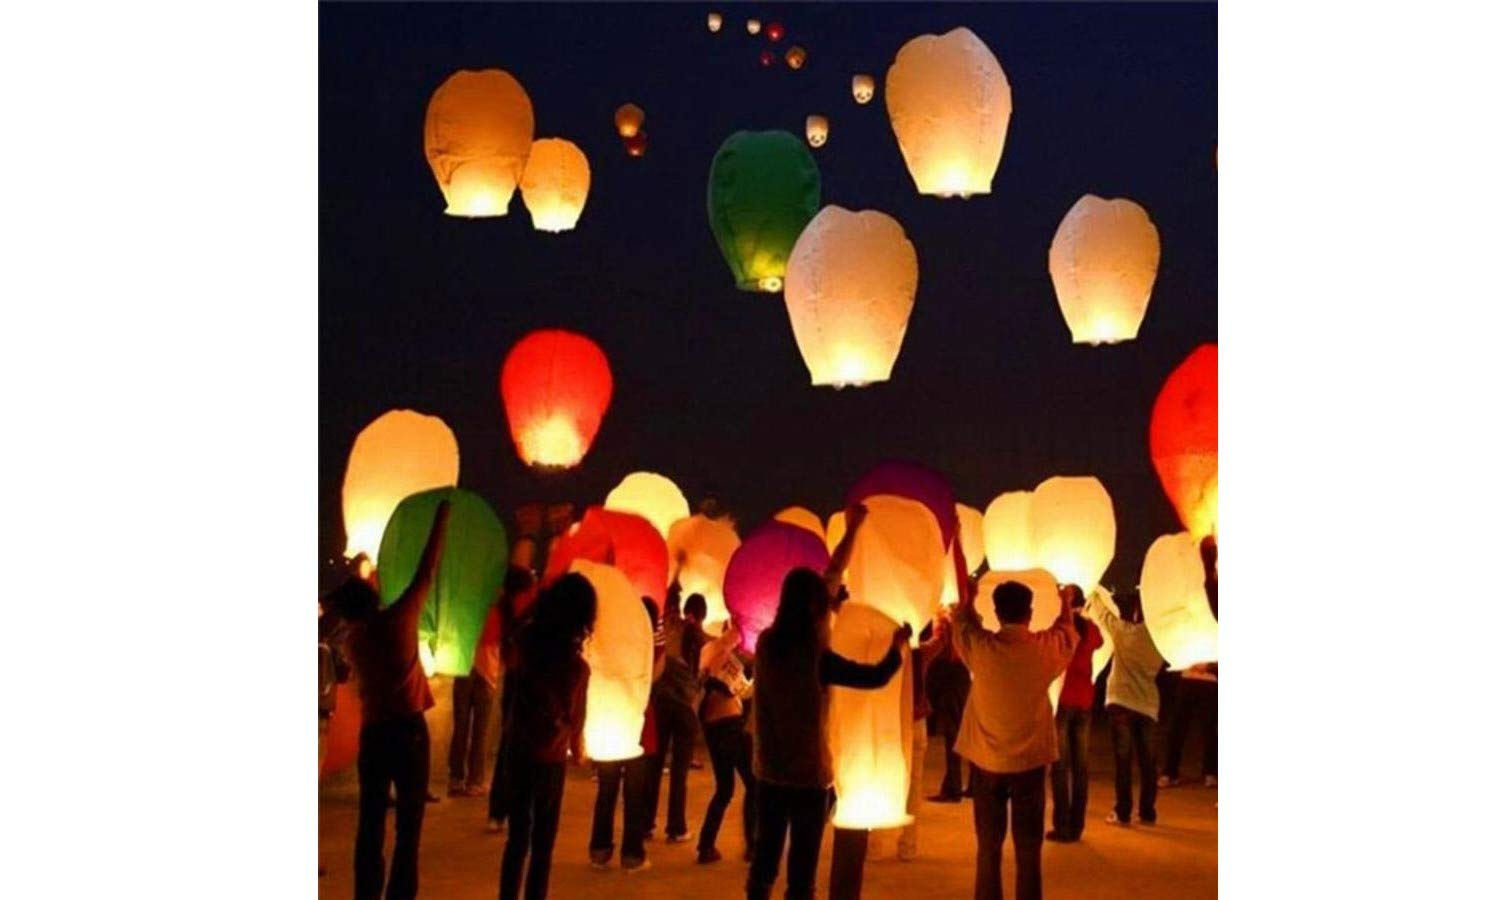 OUTDOOR NATION Sky Lanterns 10-Pack 100% Biodegradable and Environmentally Friendly Multi-Color Assortment for Events, Birthdays, Weddings, Parties, New Years, Memorial Ceremonies and More (10 Pack) by OUTDOOR NATION